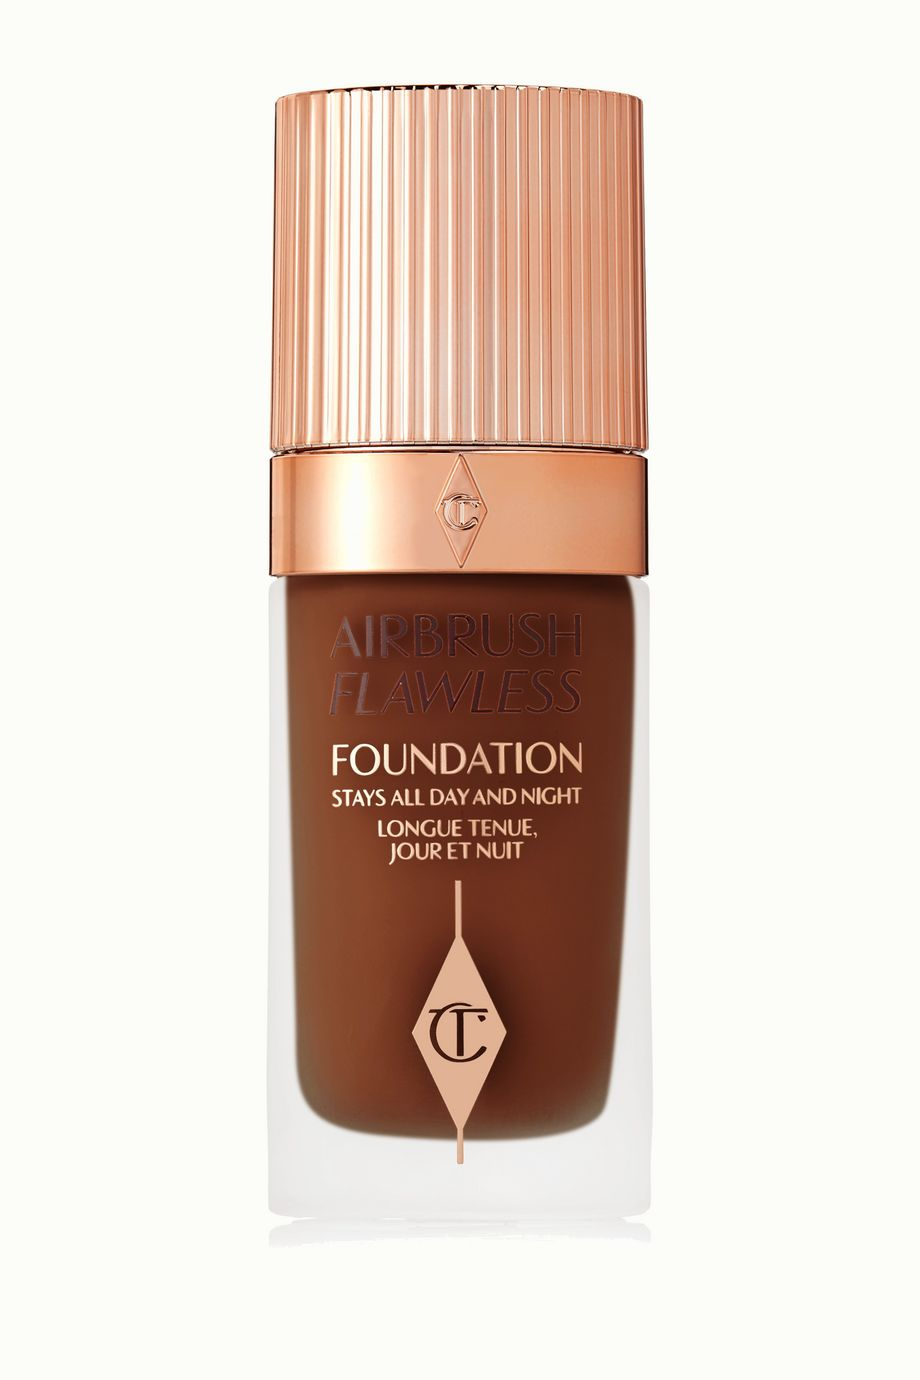 Charlotte Tilbury Airbrush Flawless Foundation - 16 Neutral, 30ml